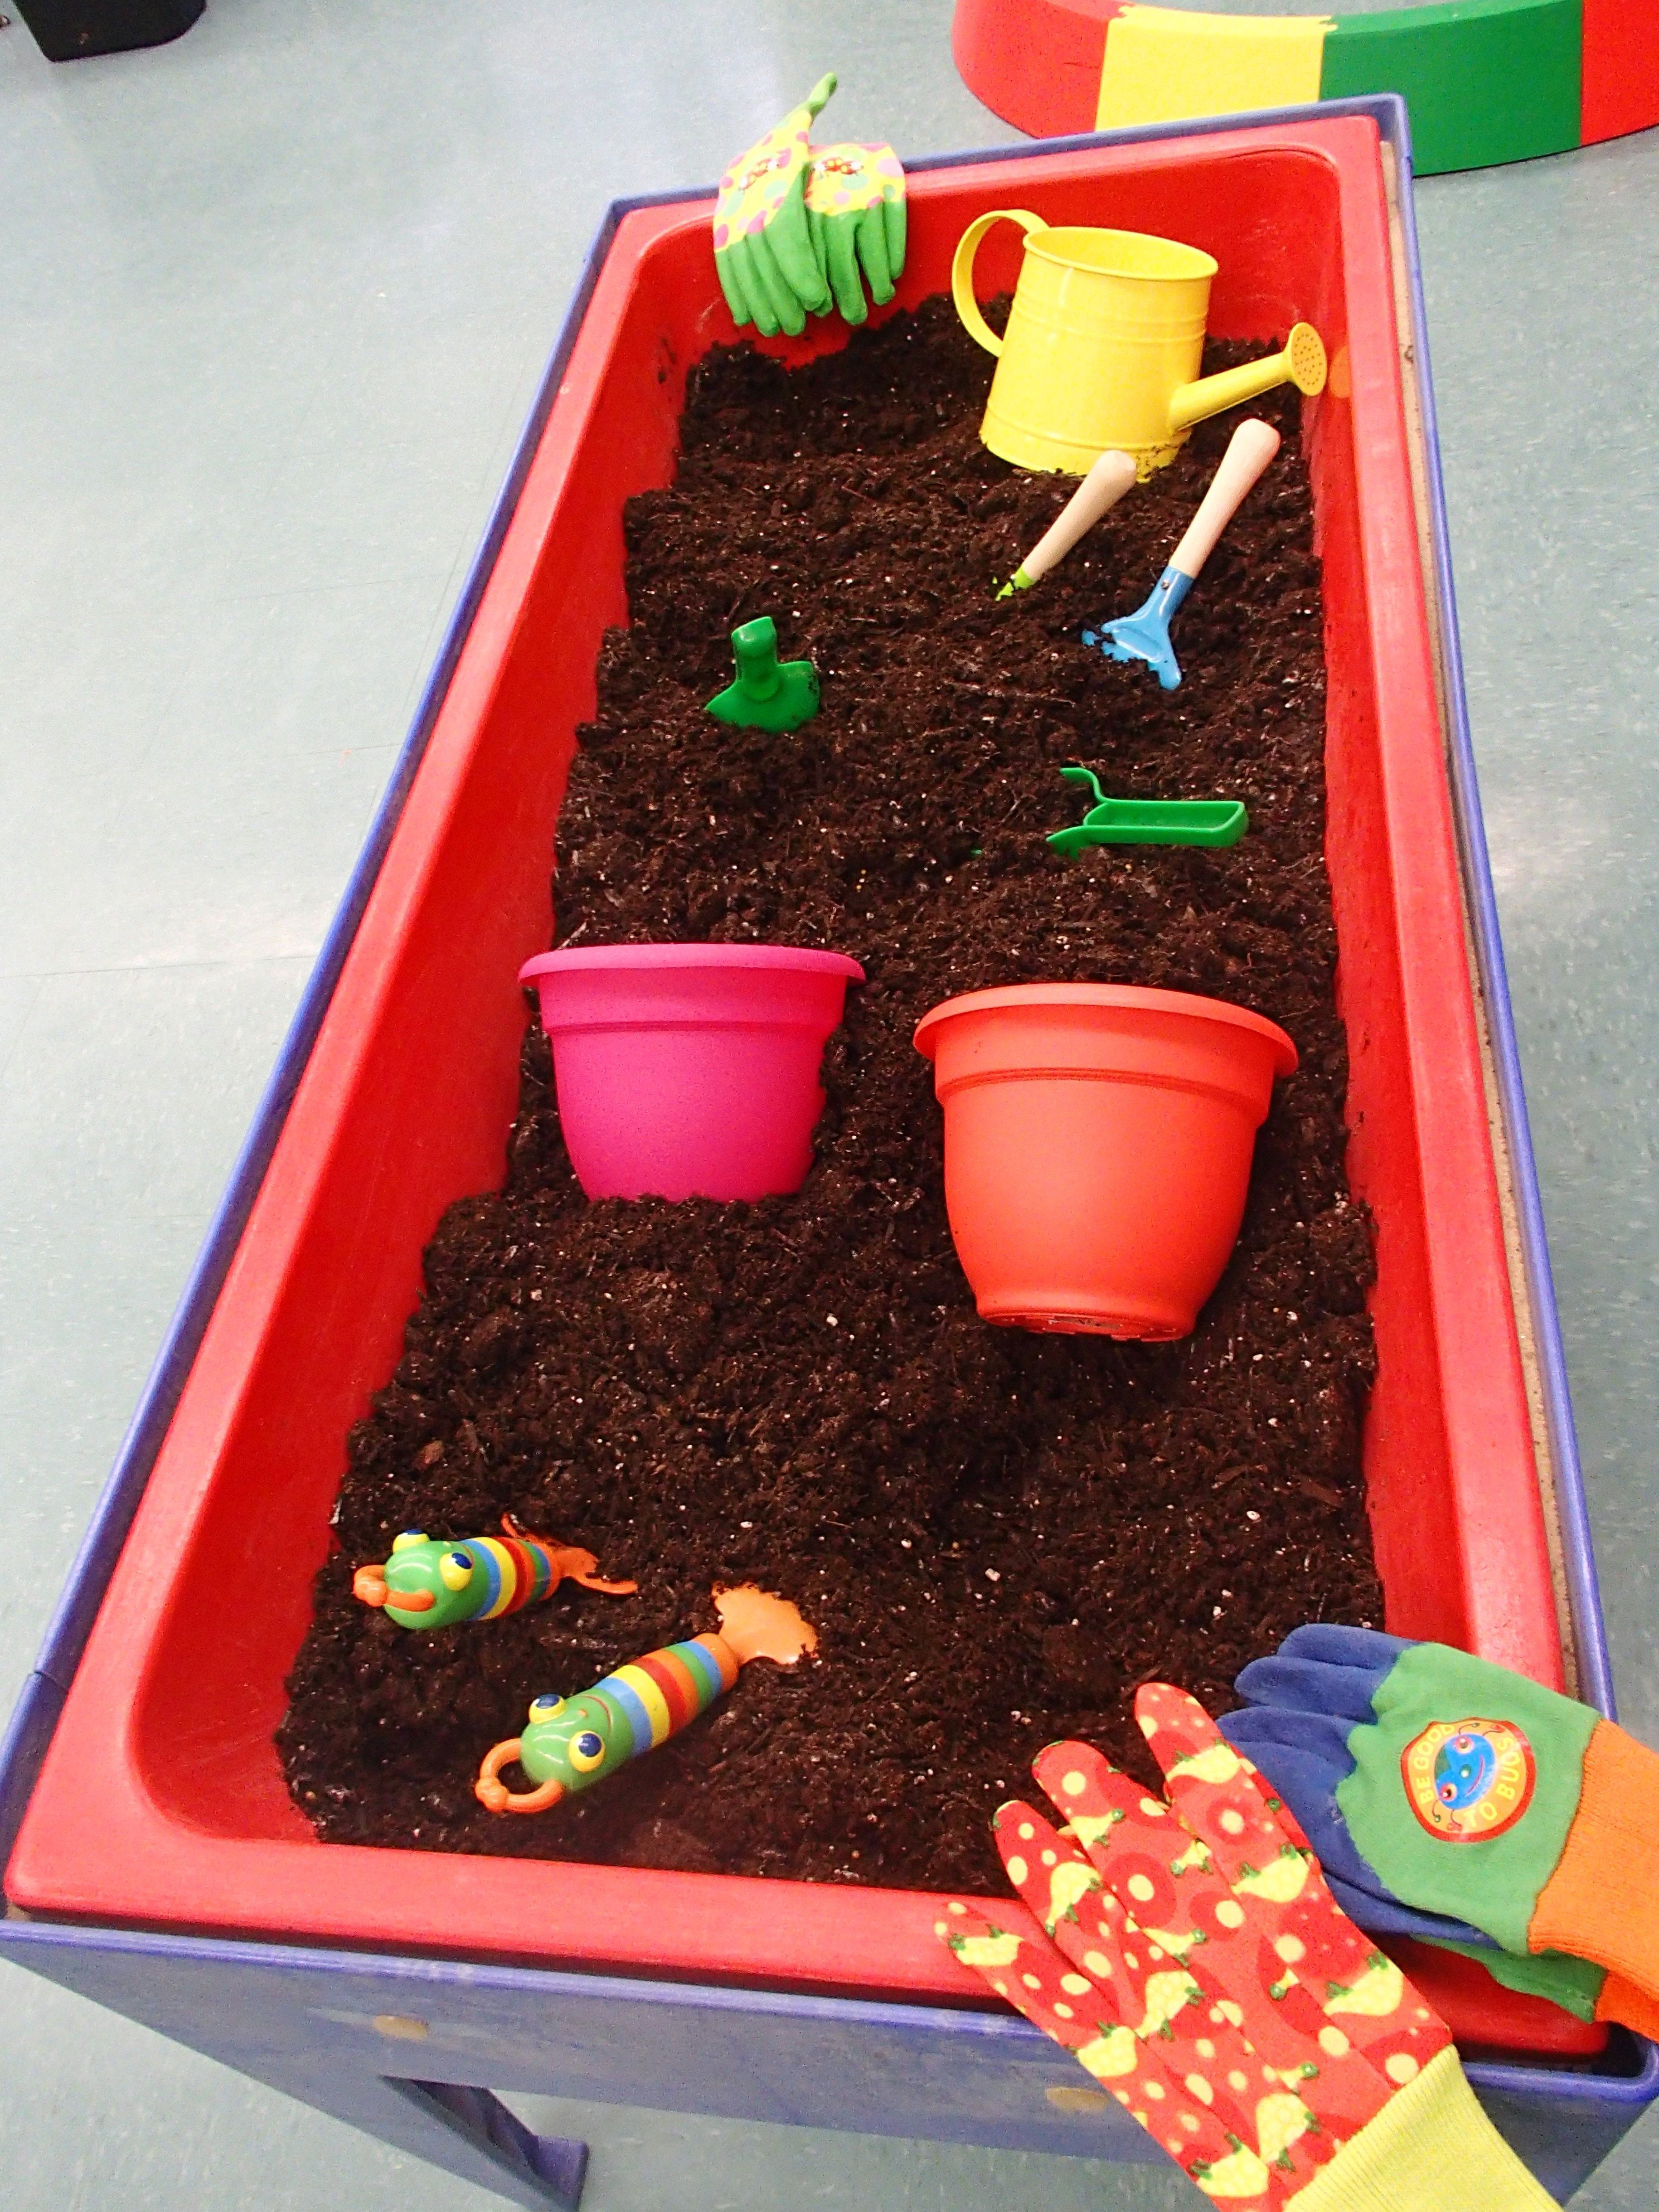 Planting table (potting soil and gardening tools)